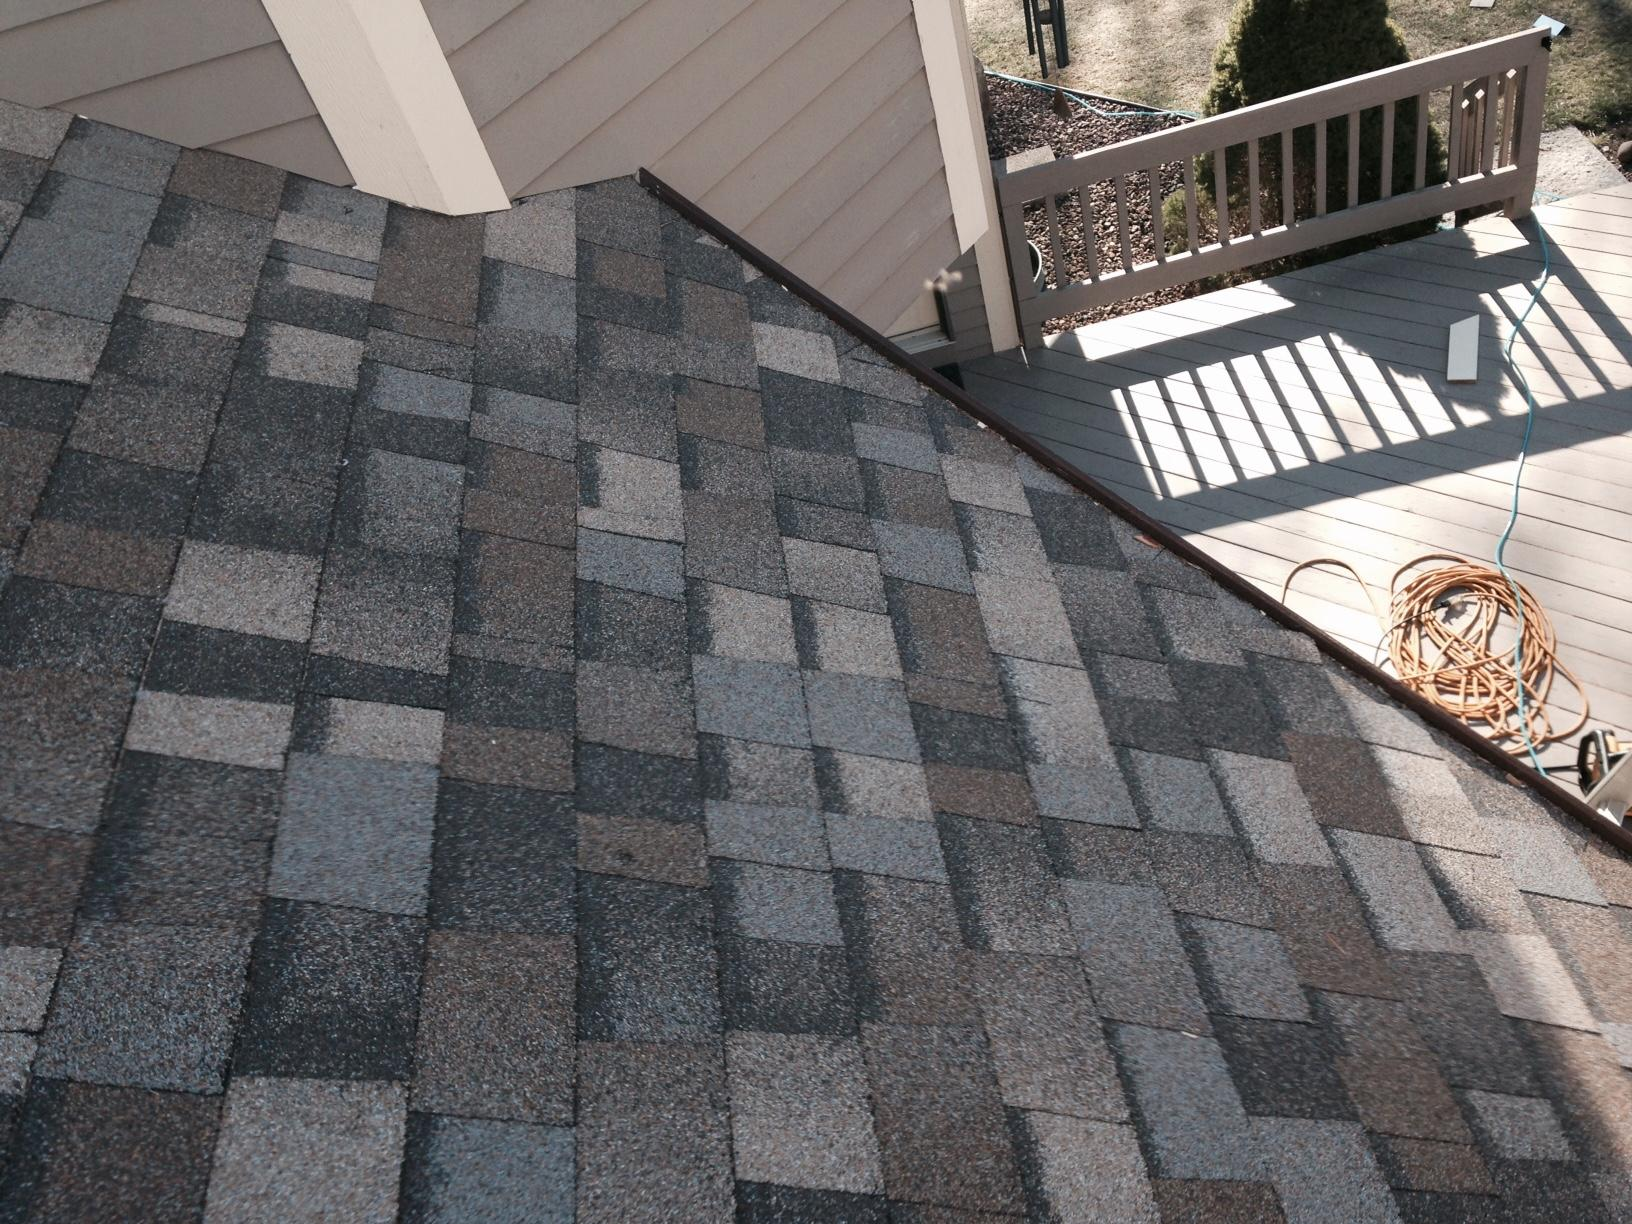 Roof Replacement Roofing Project And Chimney Siding In